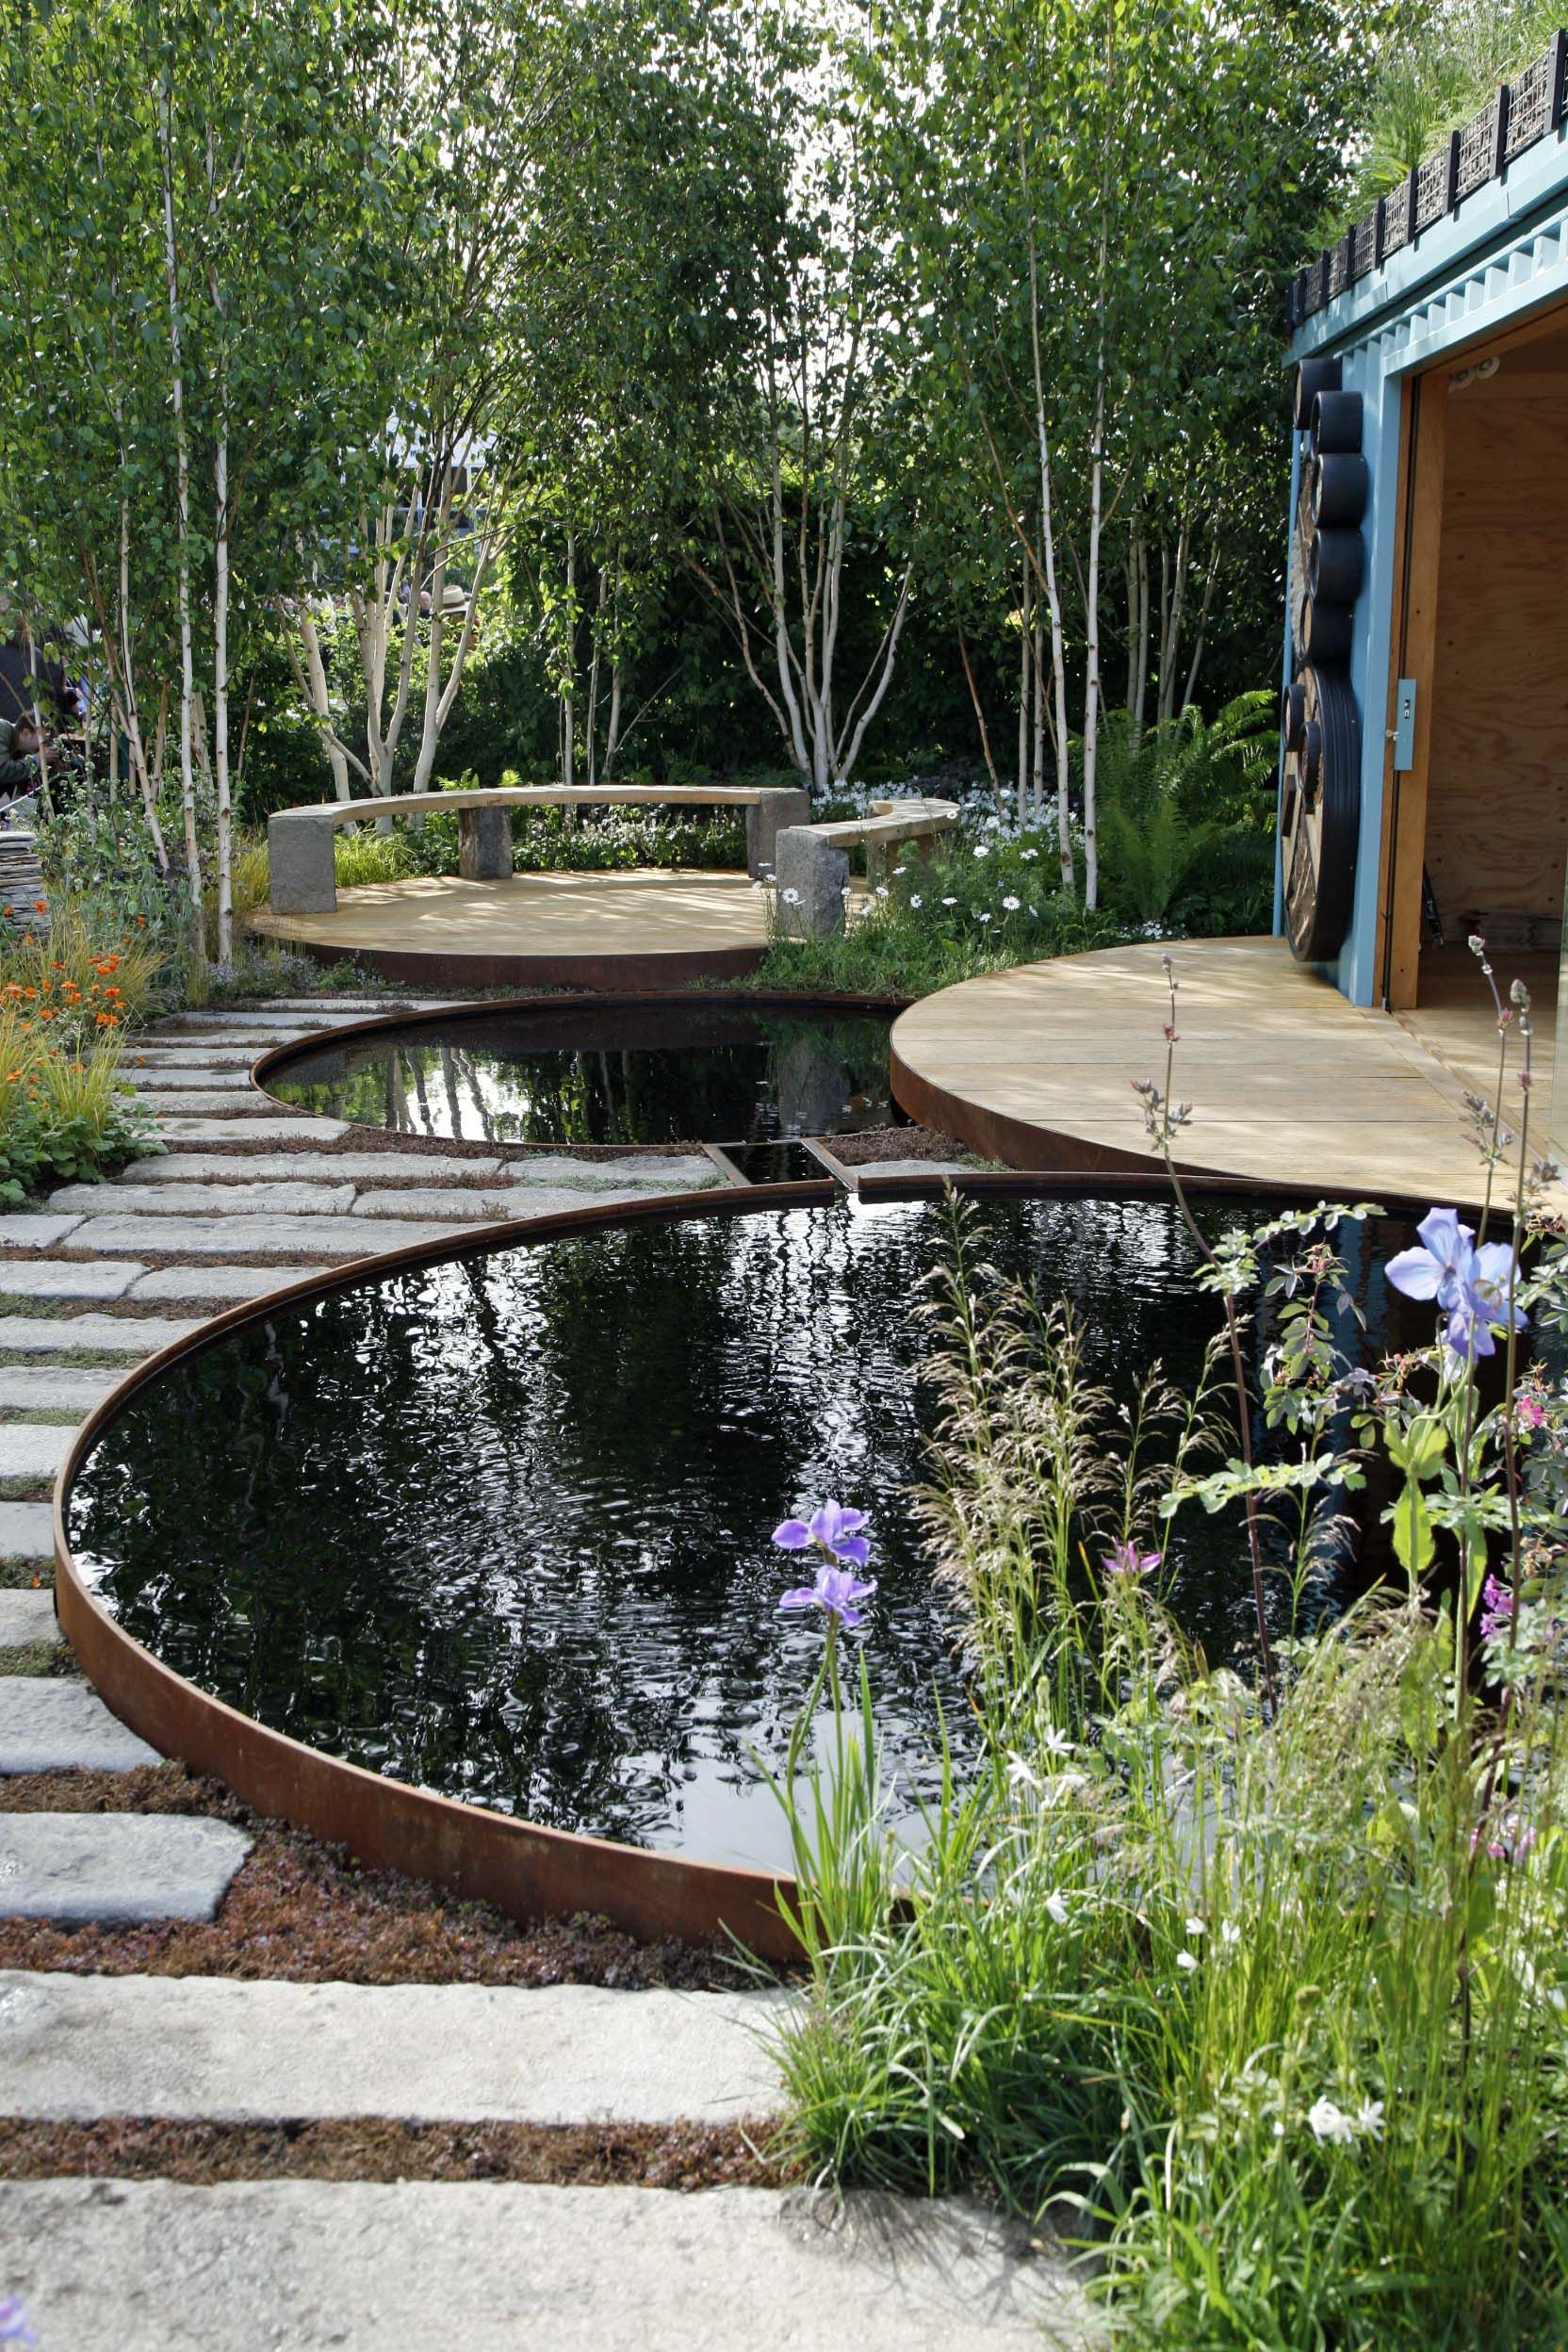 Chelsea Flower Show The Royal Bank Of Canada U0027New Wild Gardenu0027 By Nigel  Dunnett. Interesting Use Of Circles In The Design